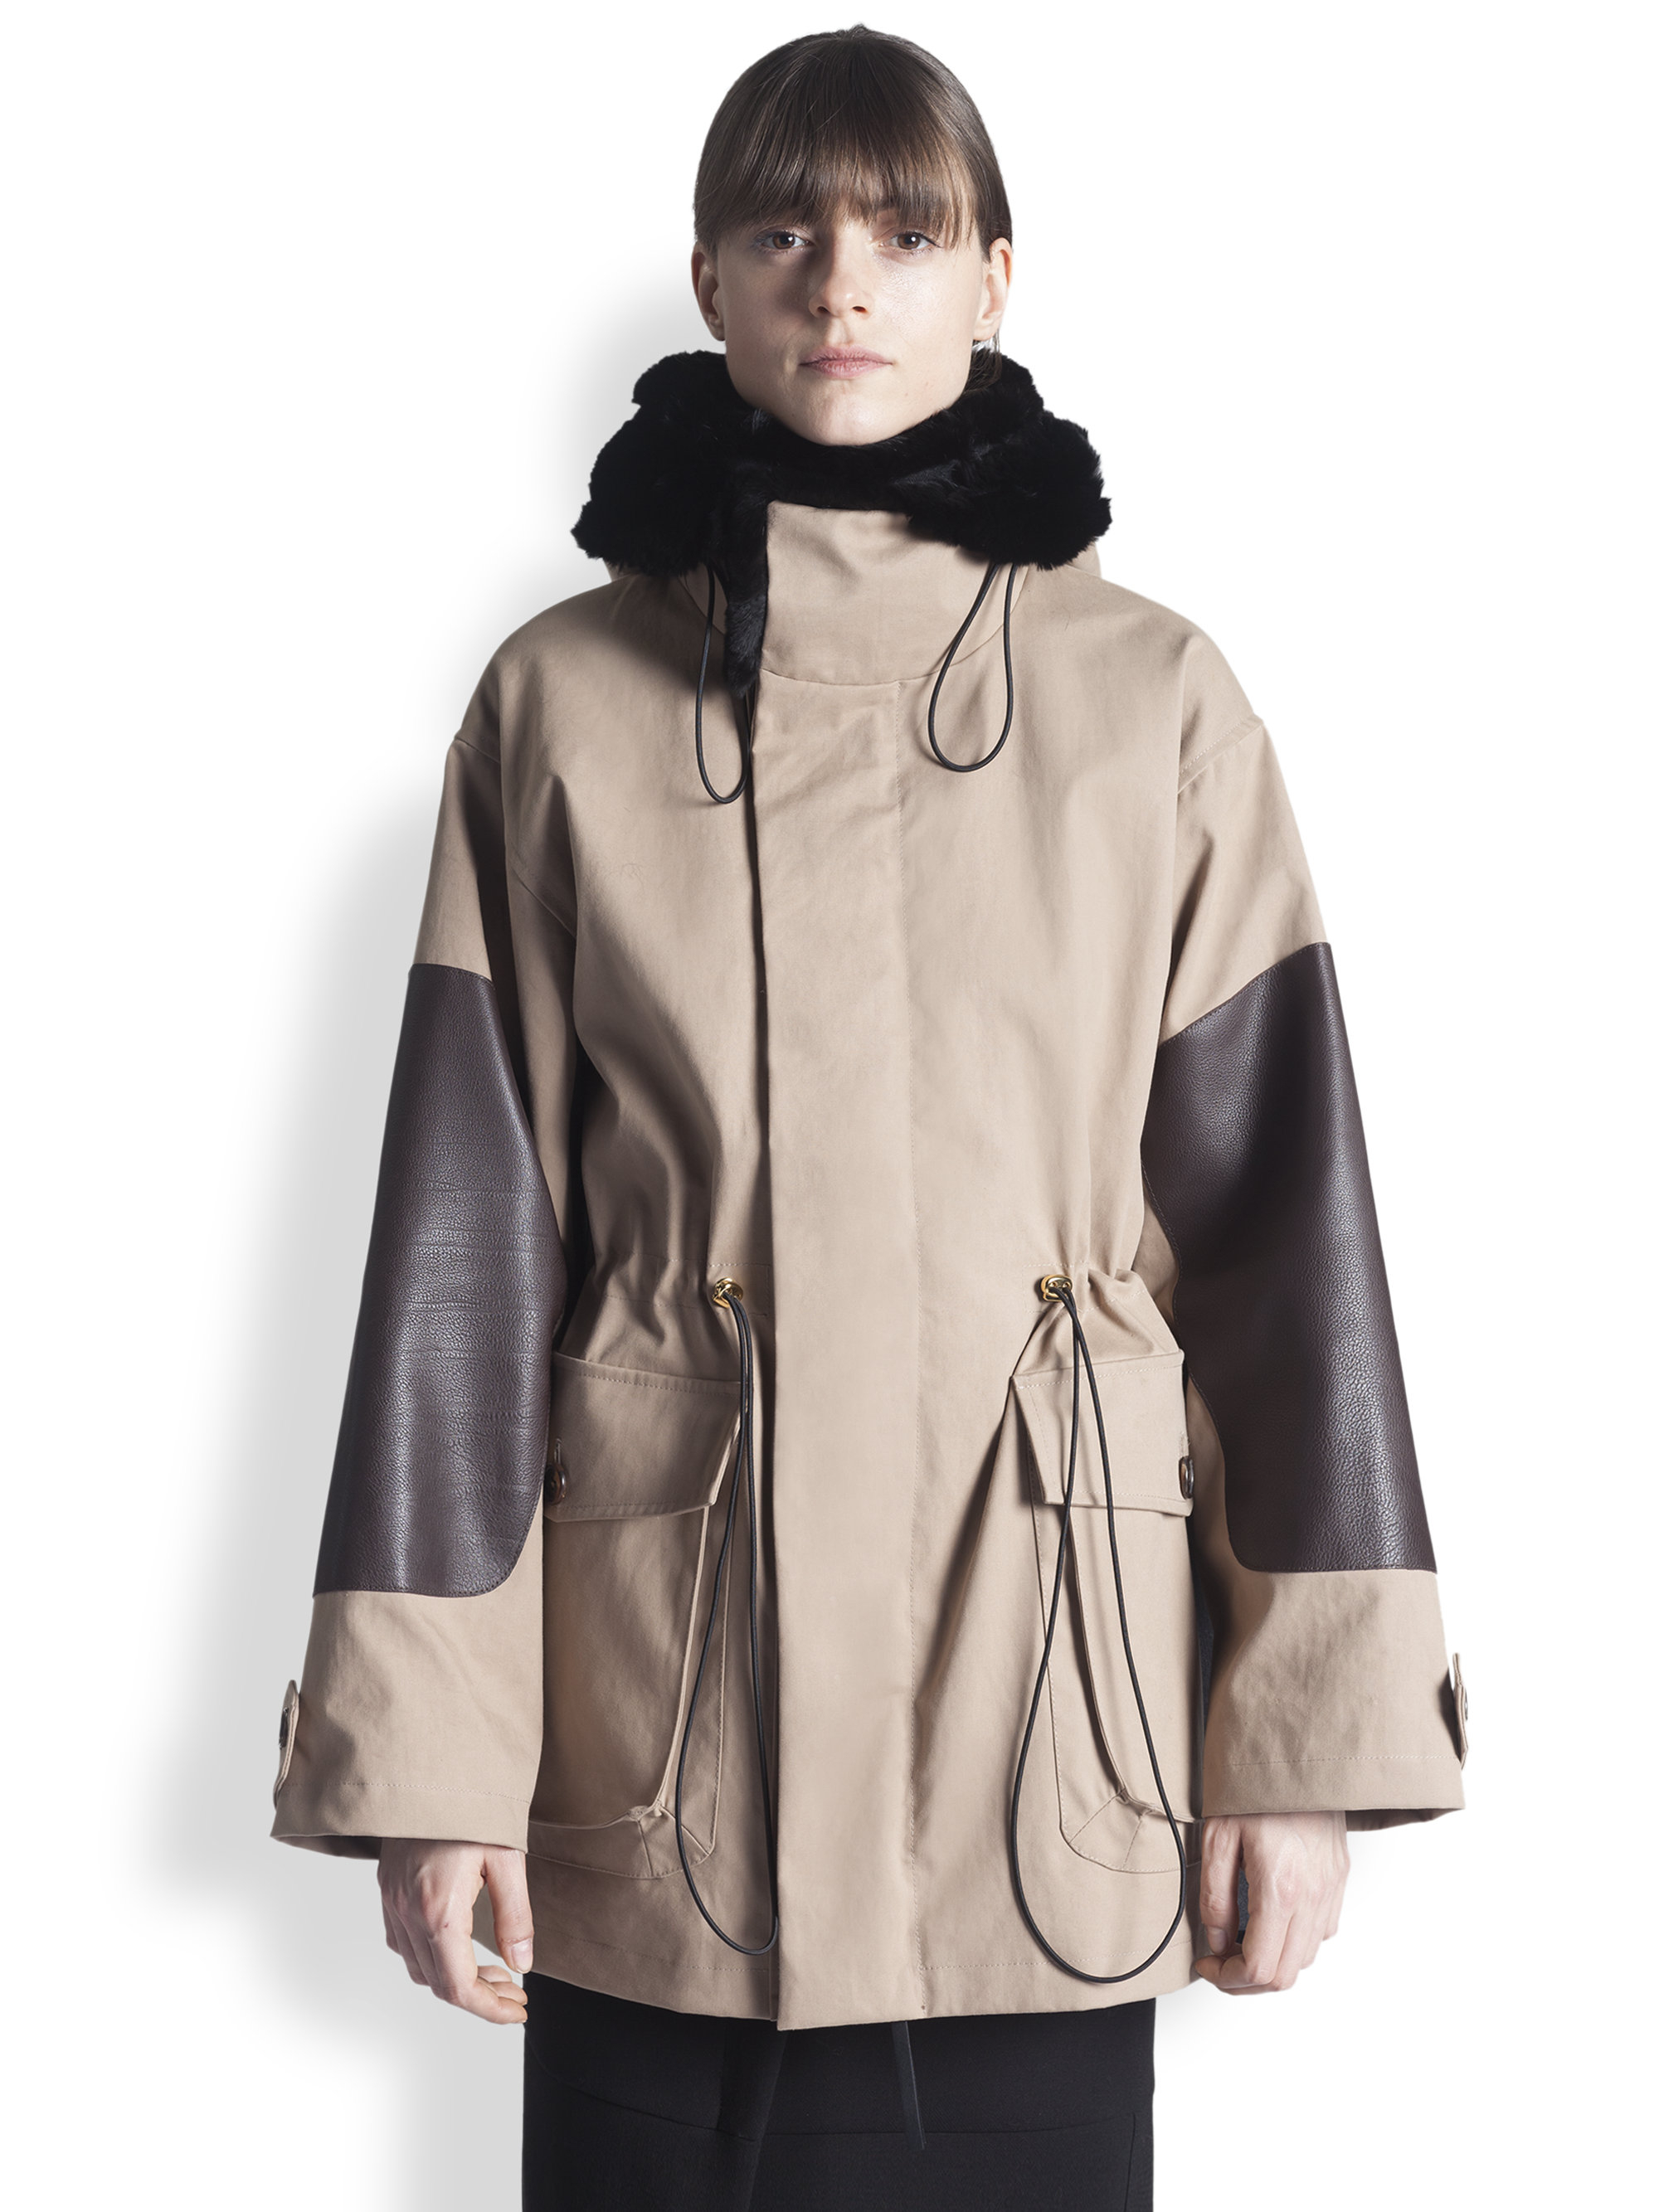 Marni Leather & Fur-Trimmed Parka in Brown | Lyst